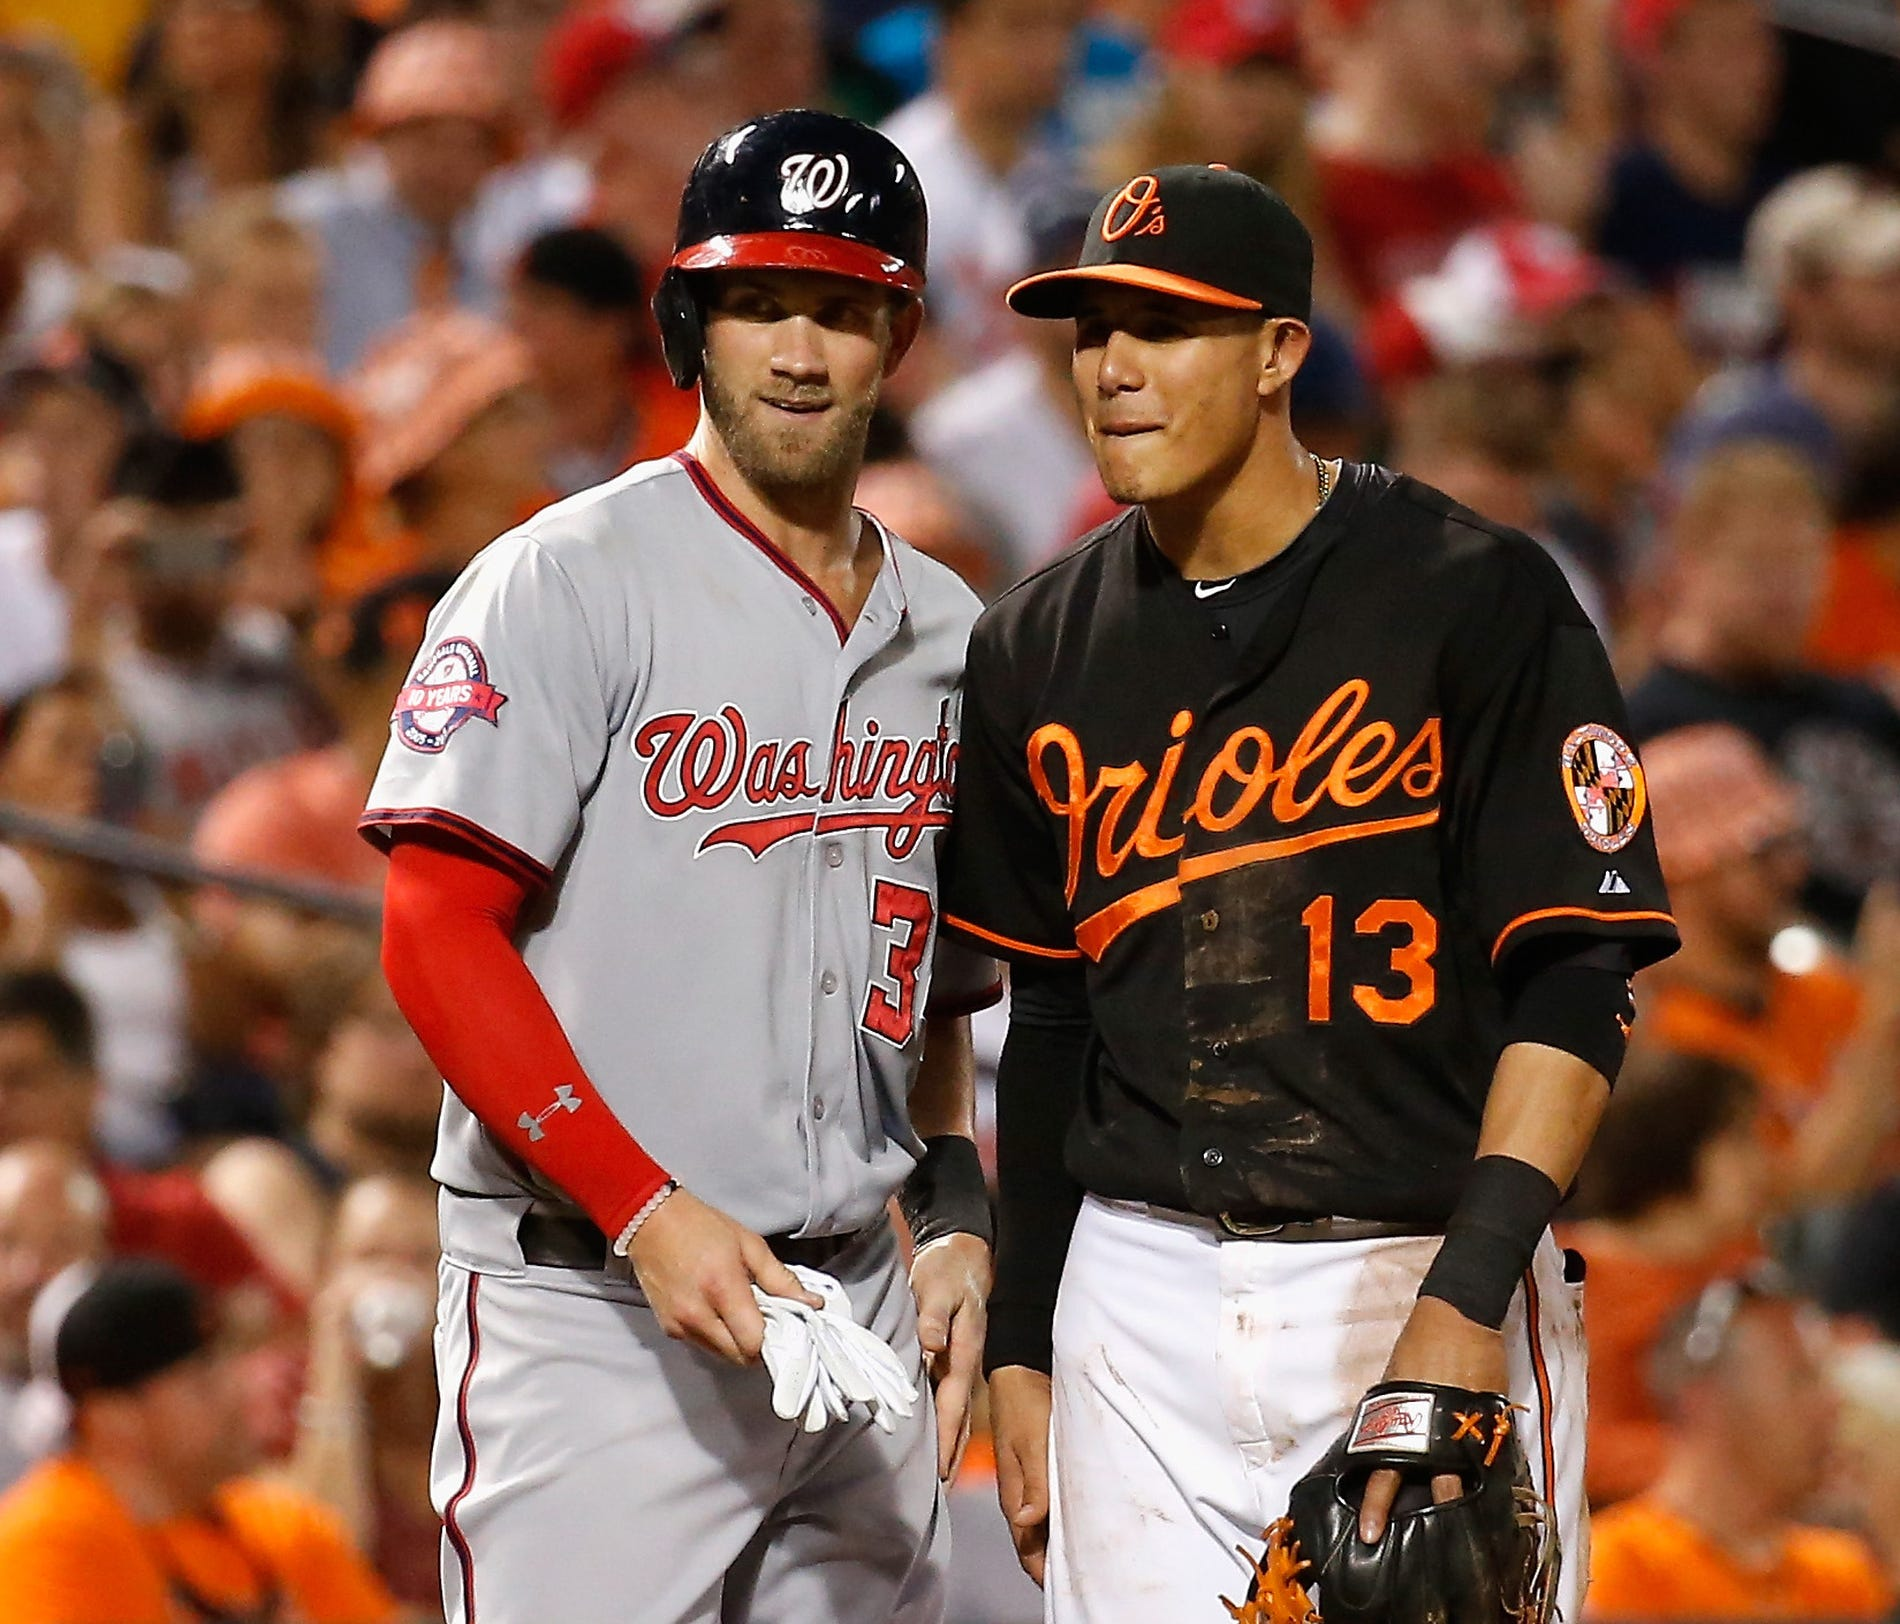 Harper and Machado will become free agents after the 2018 season.